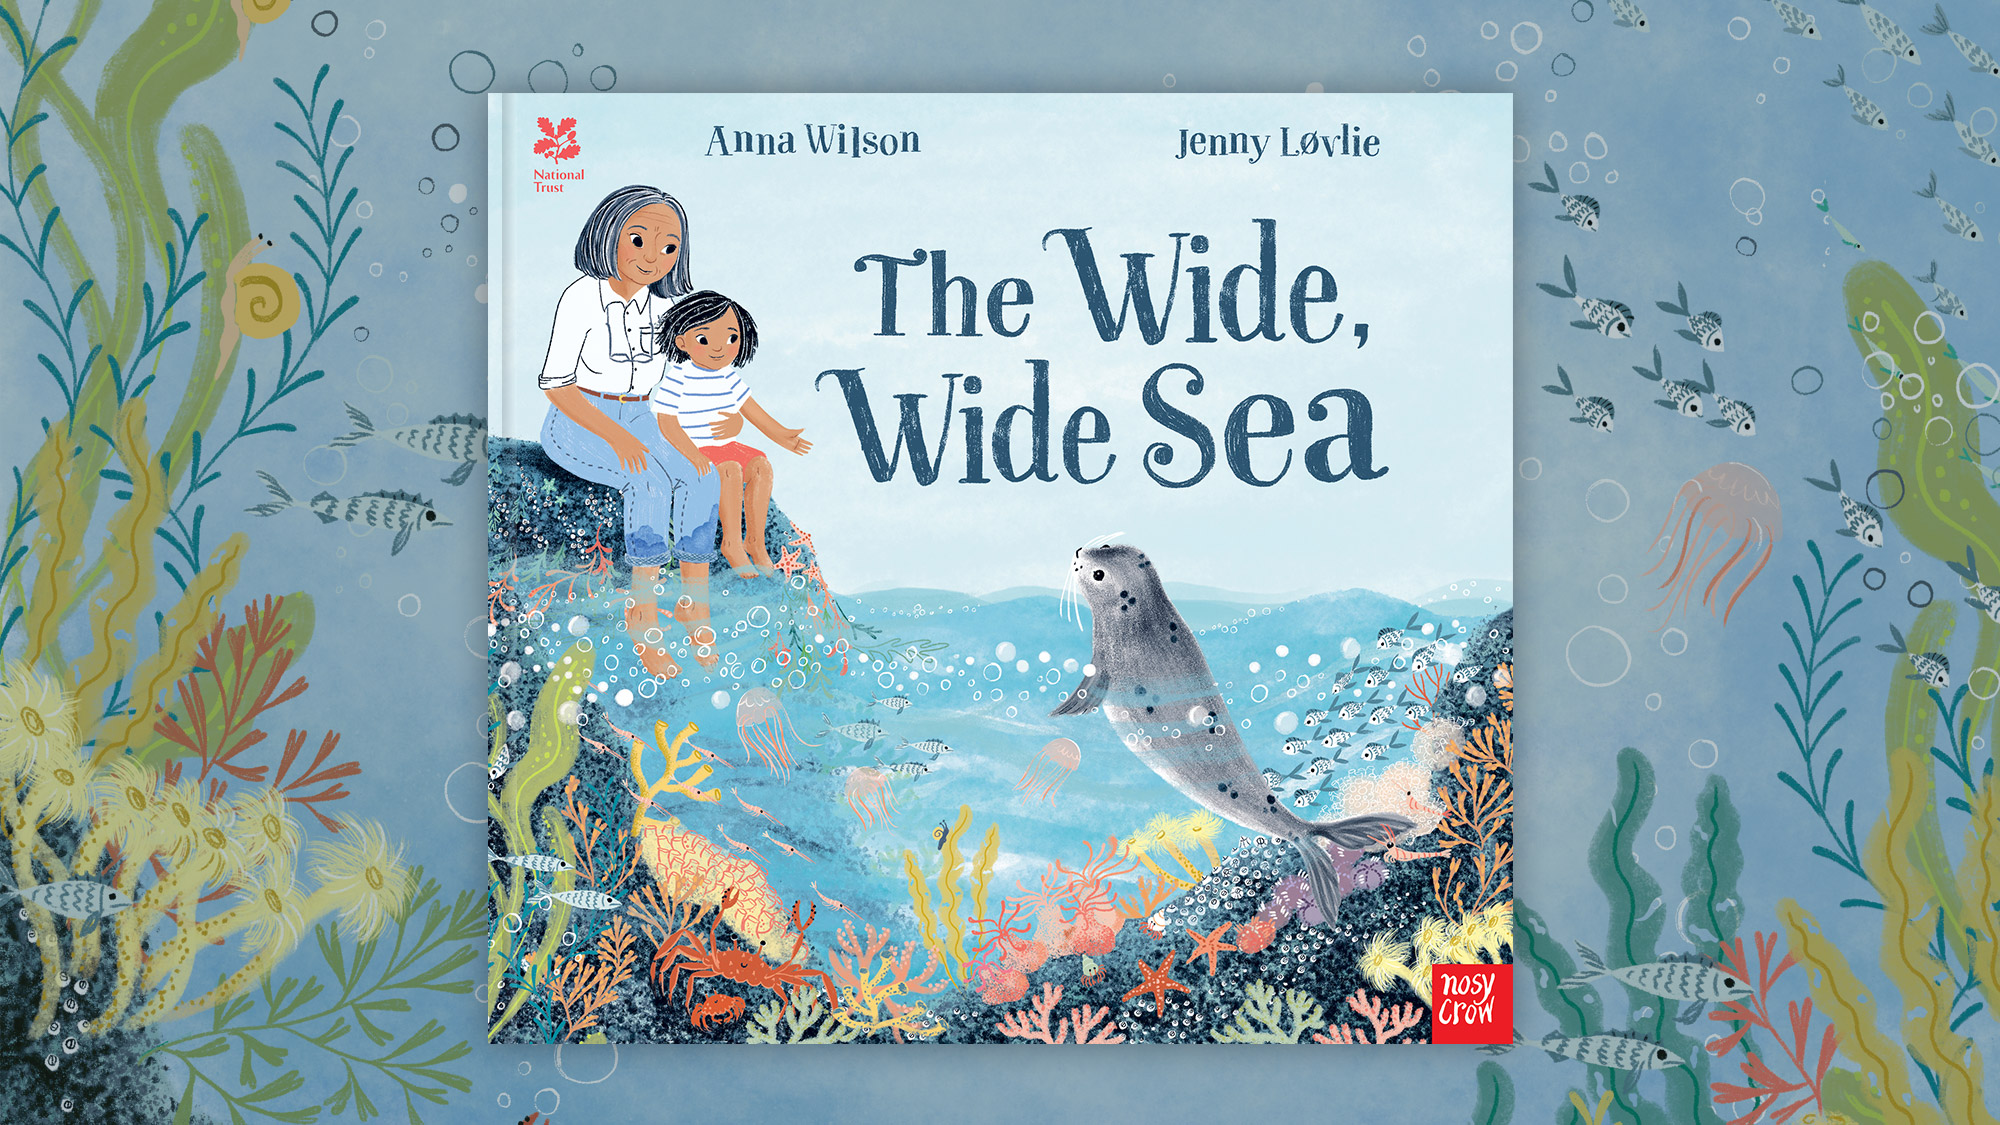 The Wide, Wide Sea picture book cover by Anna Wilson and Jenny Løvlie